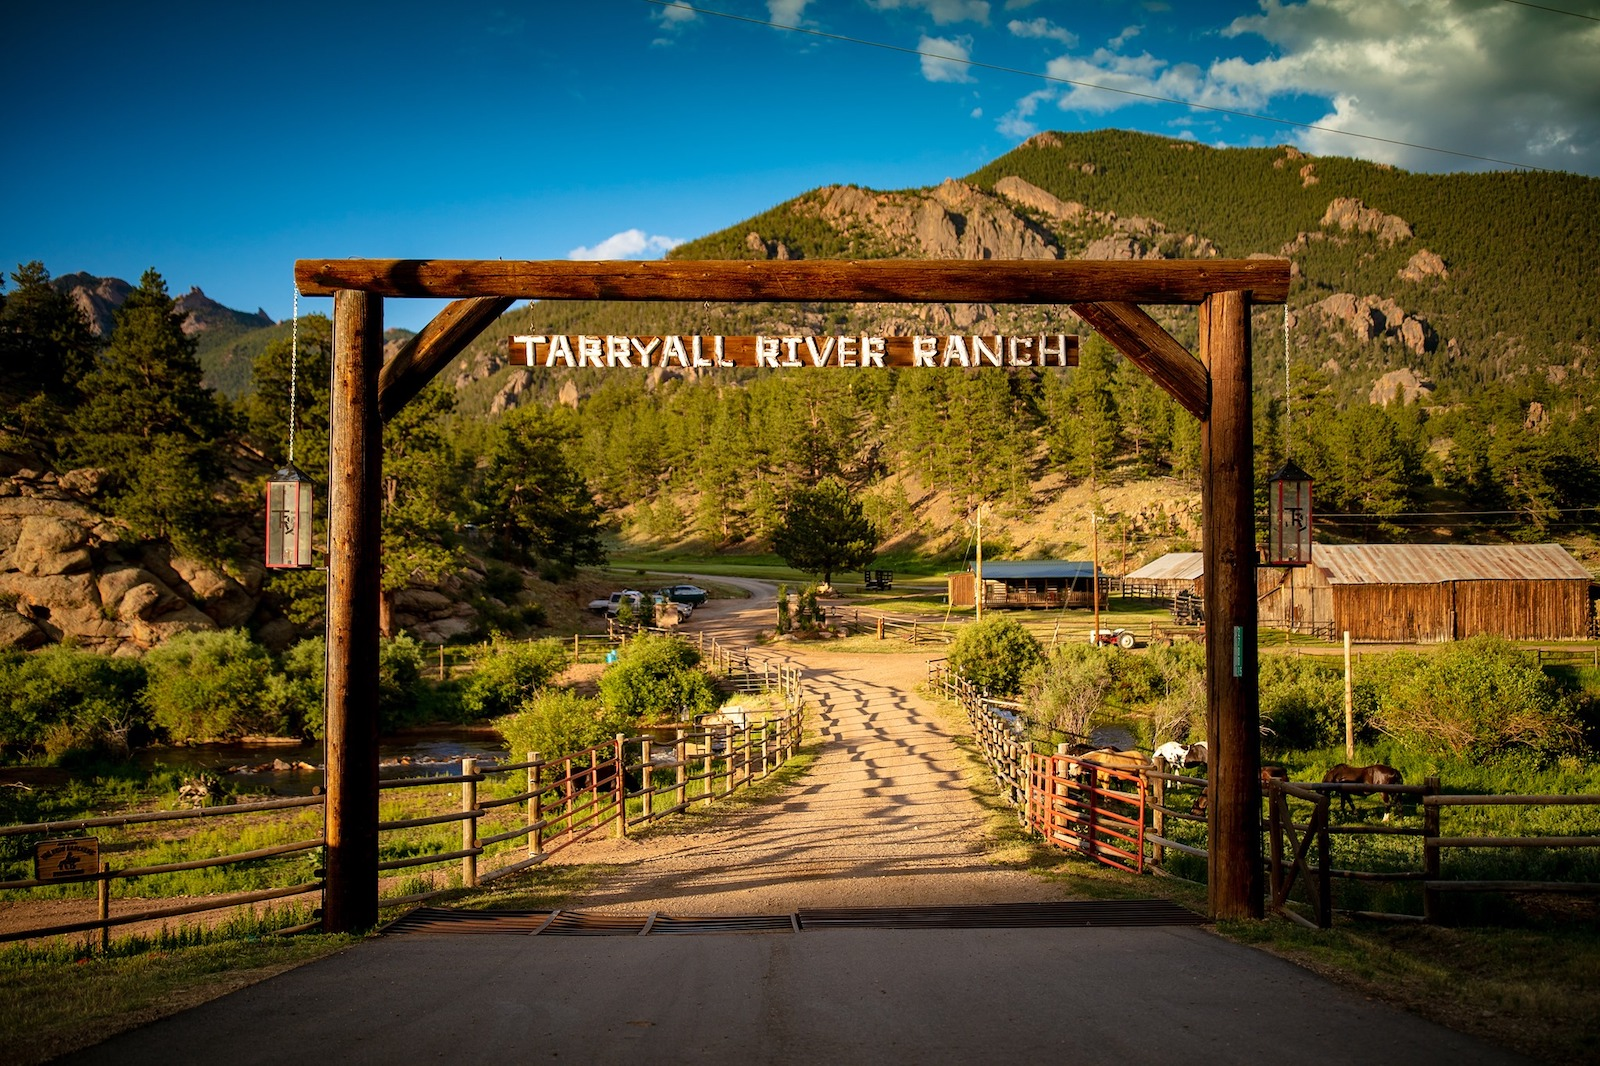 Image of the entrance of Tarryall River Ranch in Lake George, Colorado